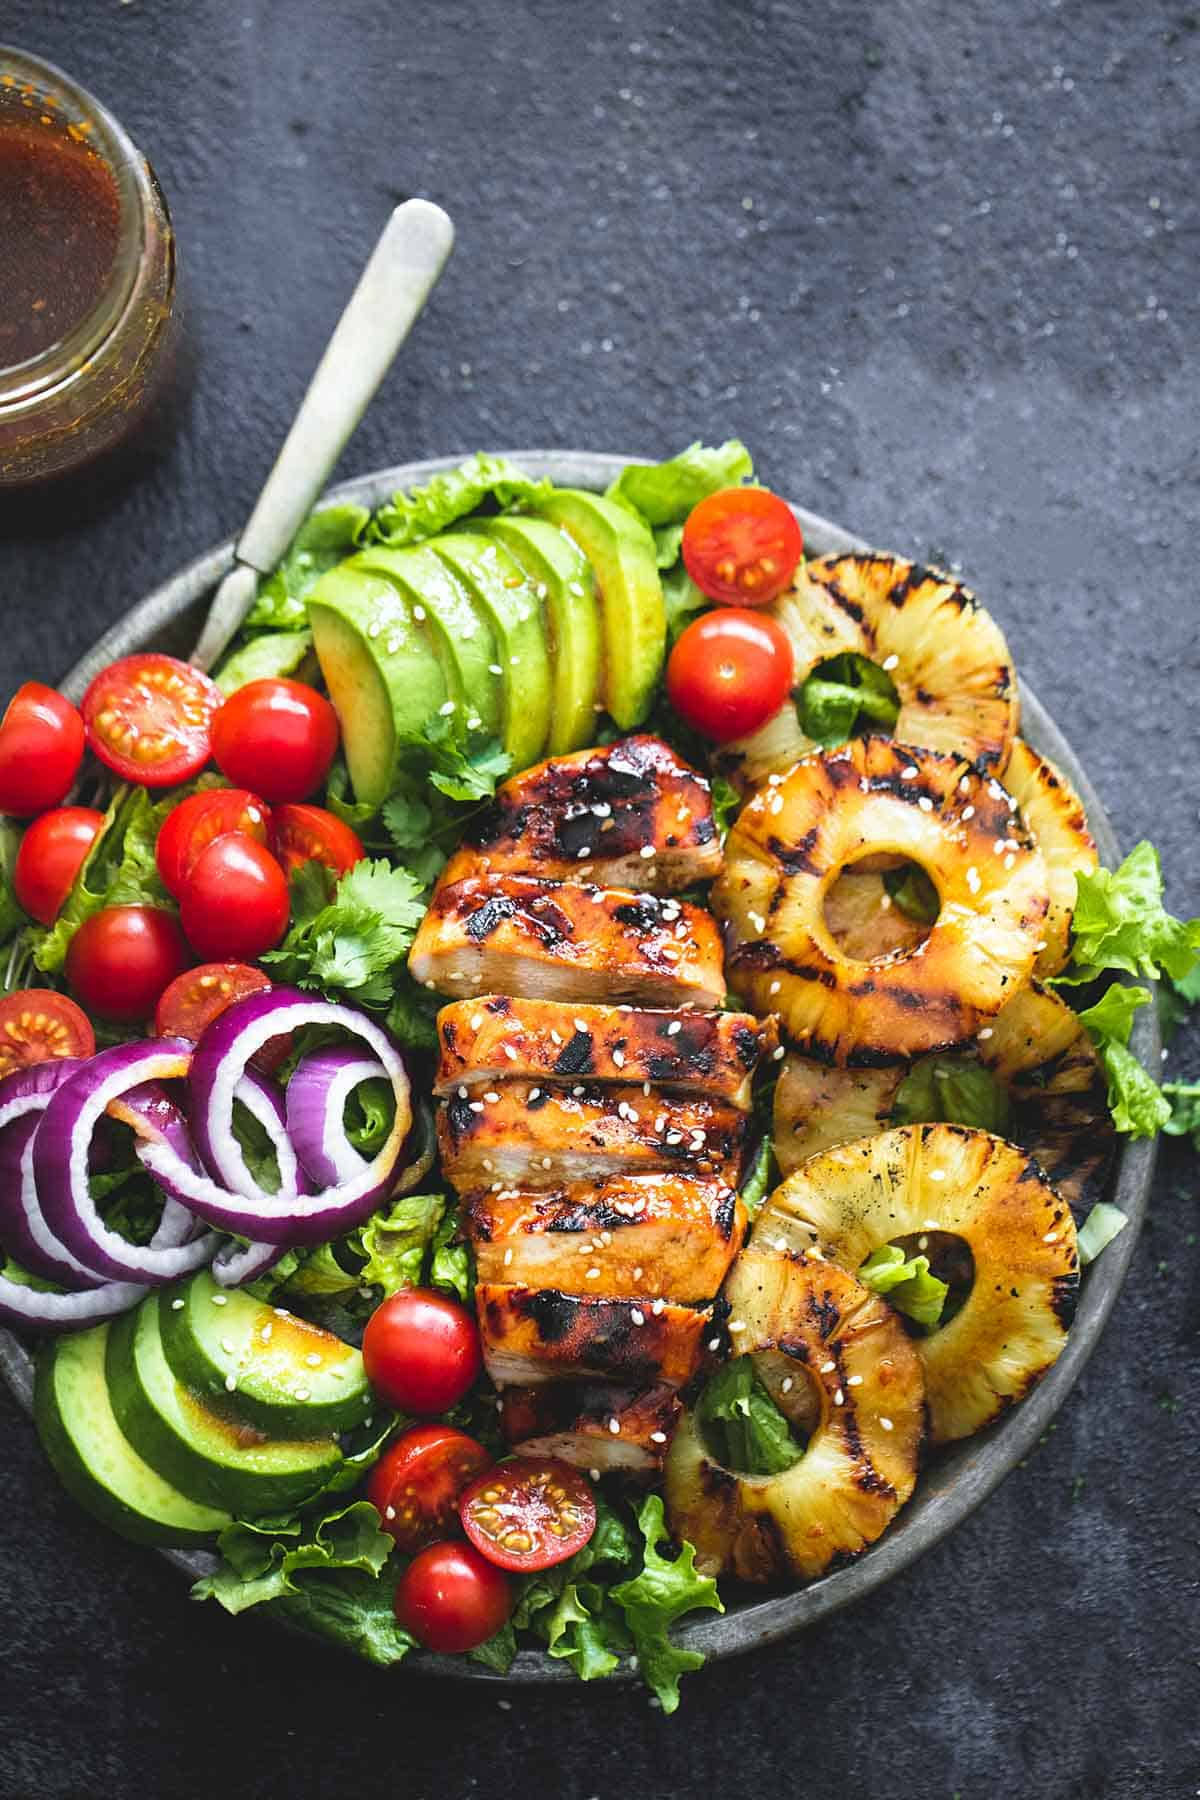 top view of grilled teriyaki chicken salad with a fork on a plate with a jar of teriyaki vinaigrette on the side.